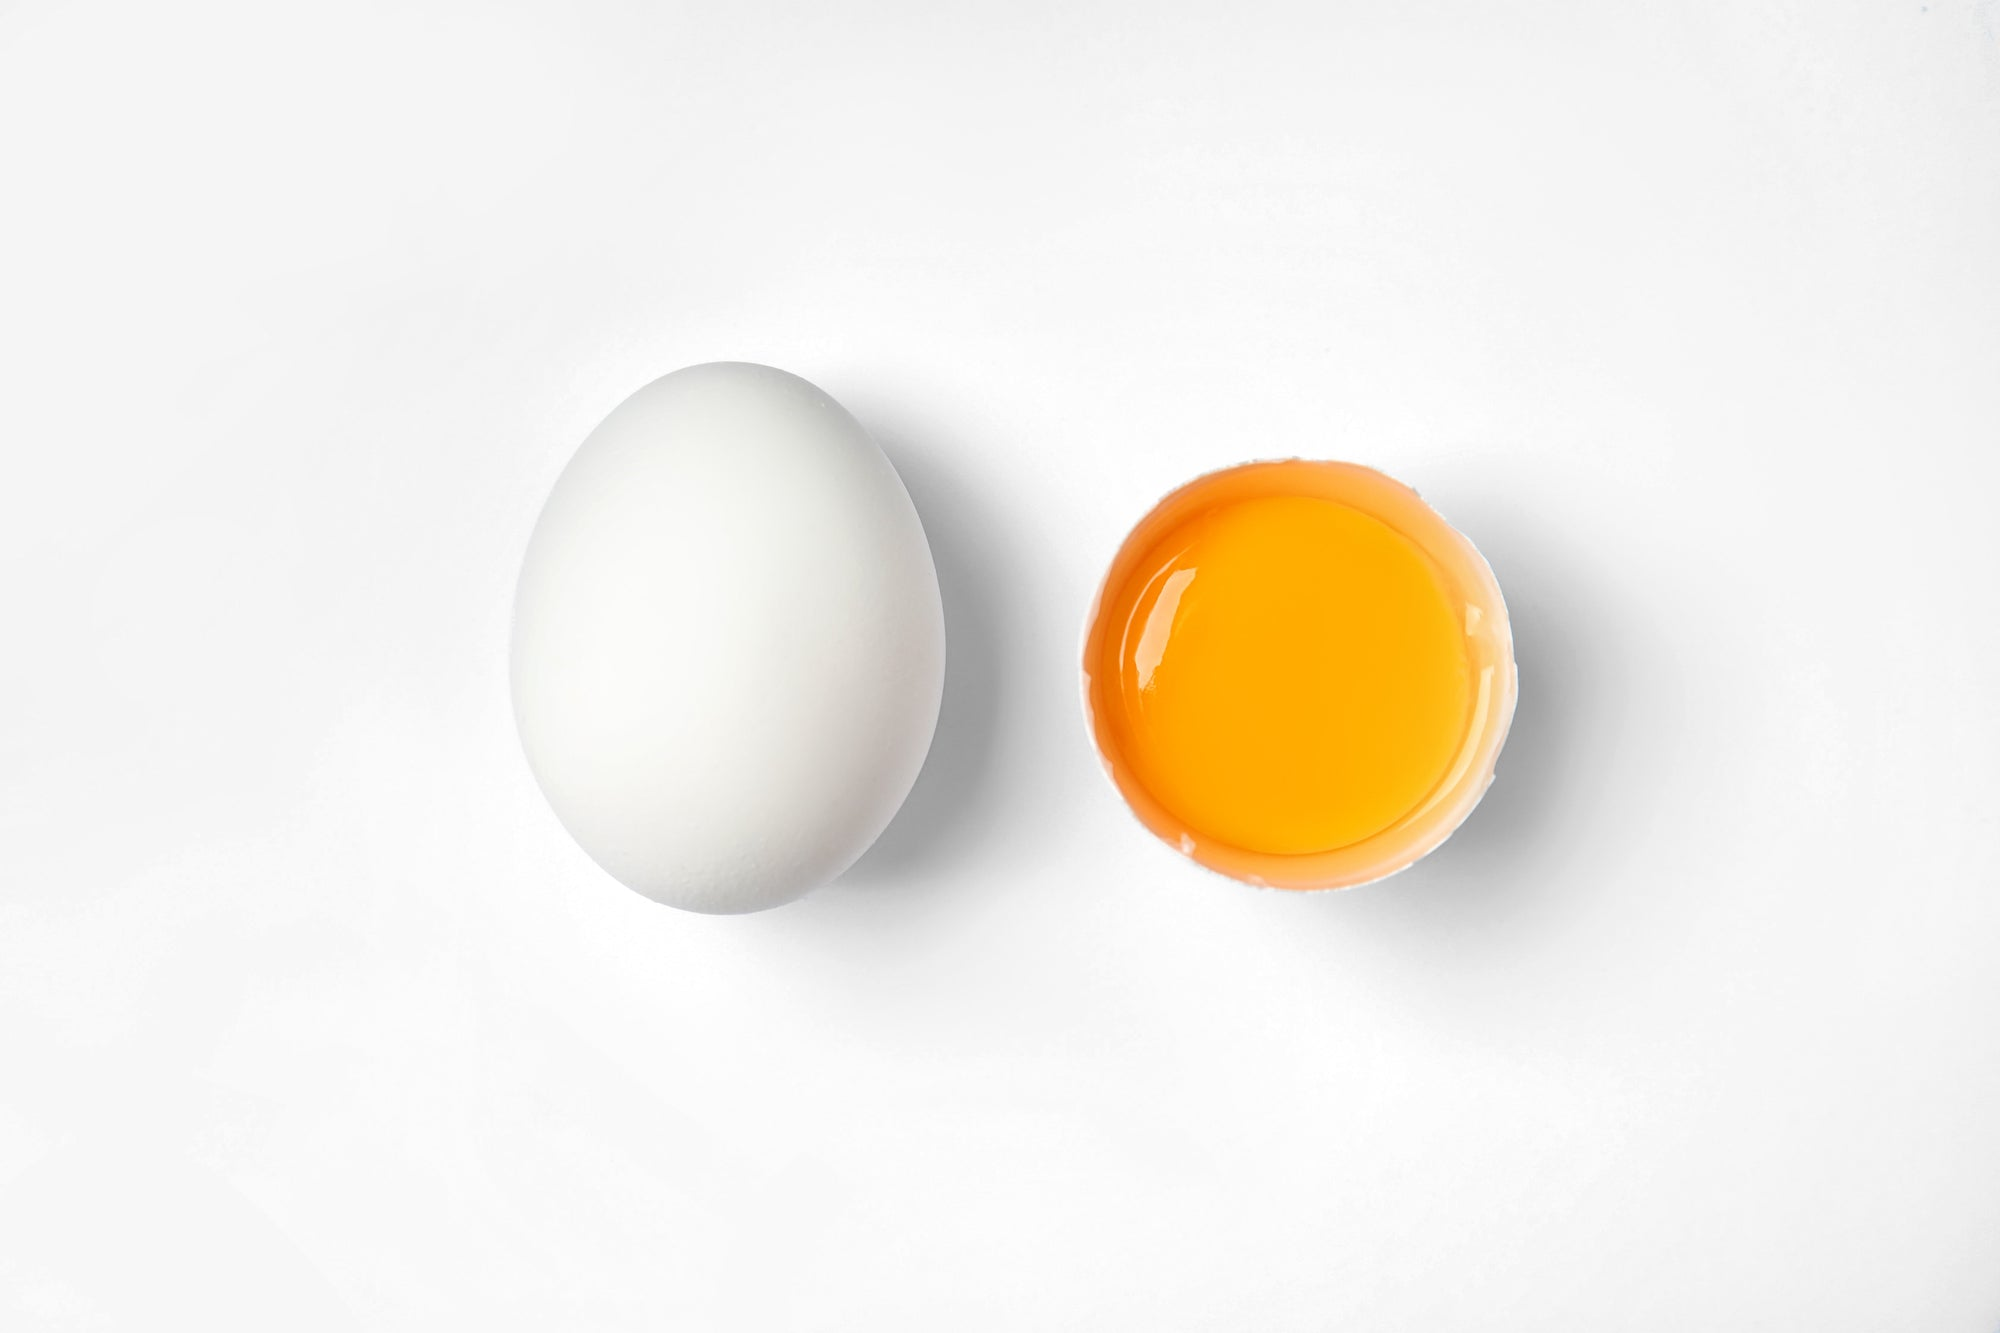 Two eggs on a white background one whole the other broke in half with the yolk in the half shell